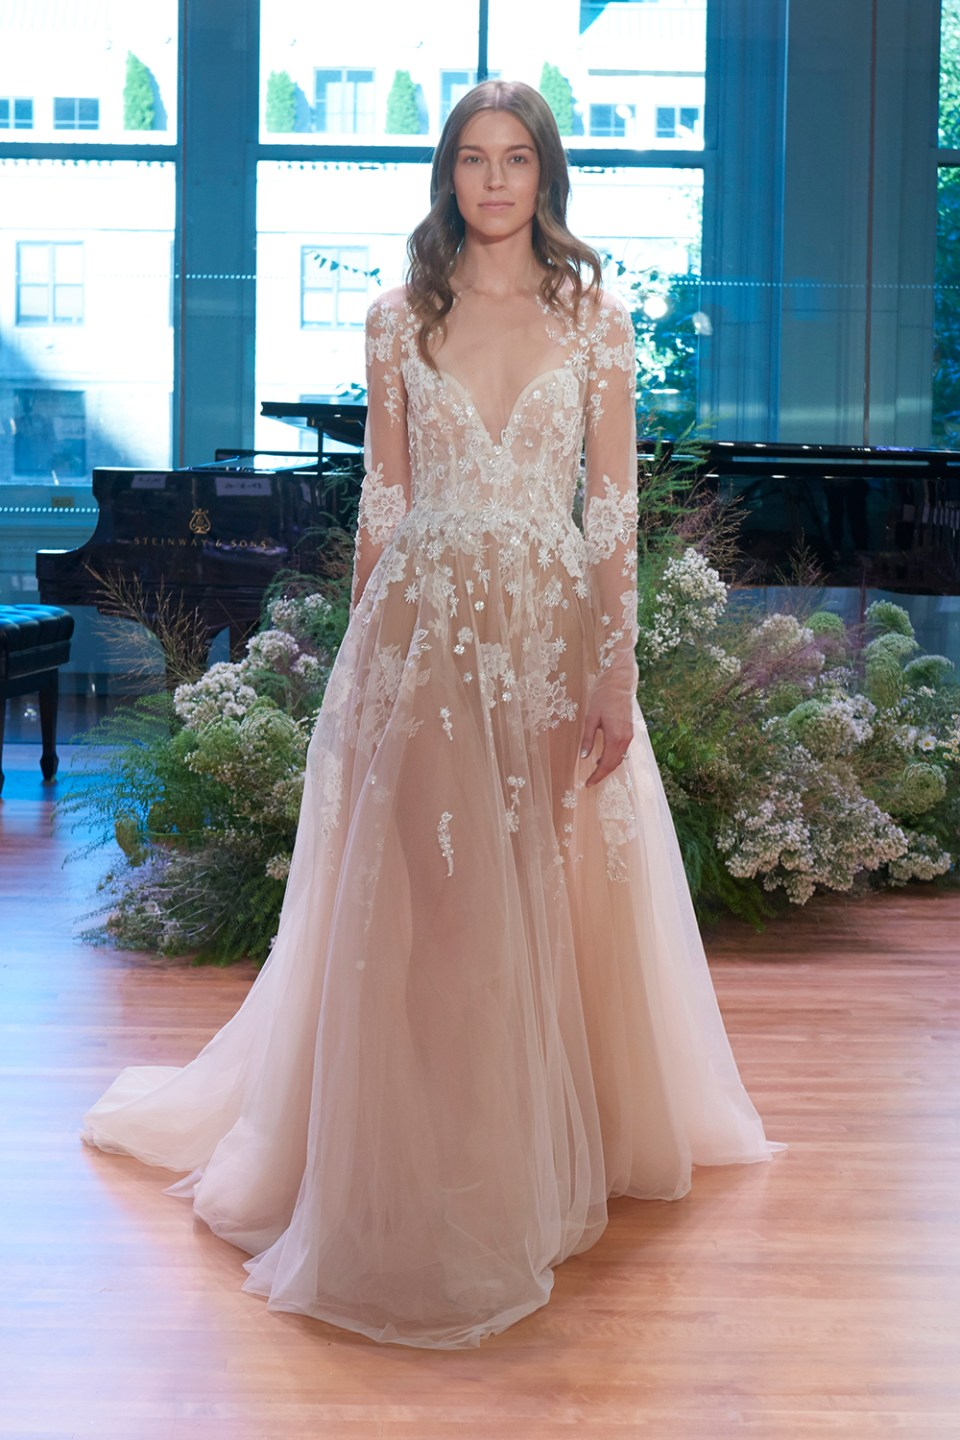 Rosemary - Monique Lhuillier Fall 2017 Bridal Collection. www.theweddingnotebook.com